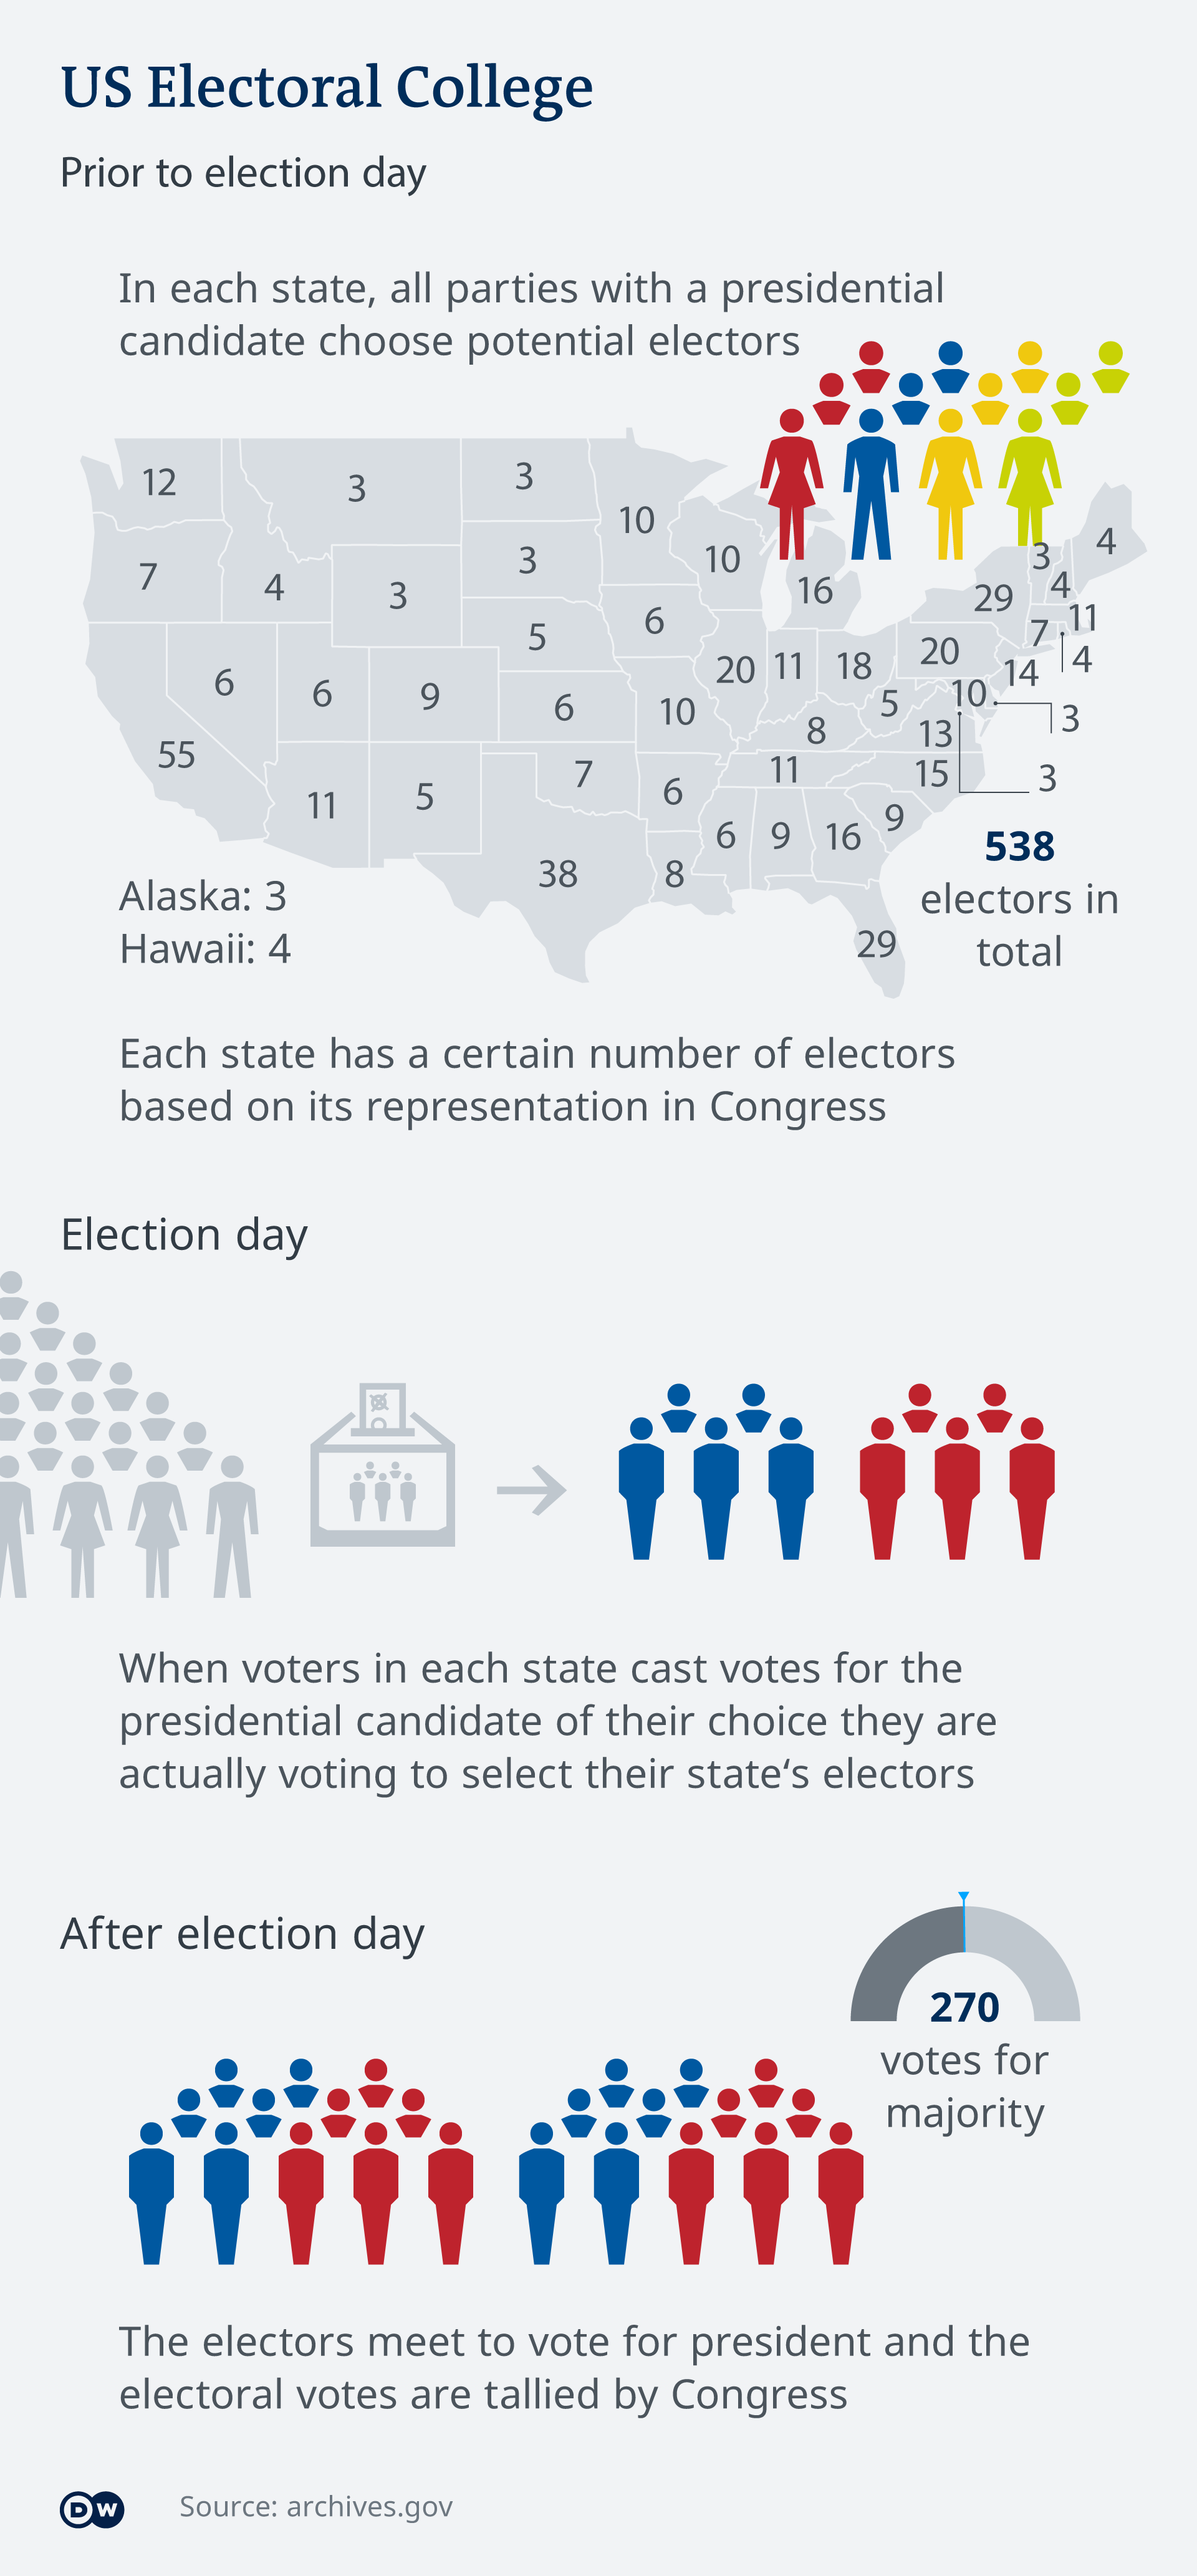 An infographic show how the US Electoral College system works